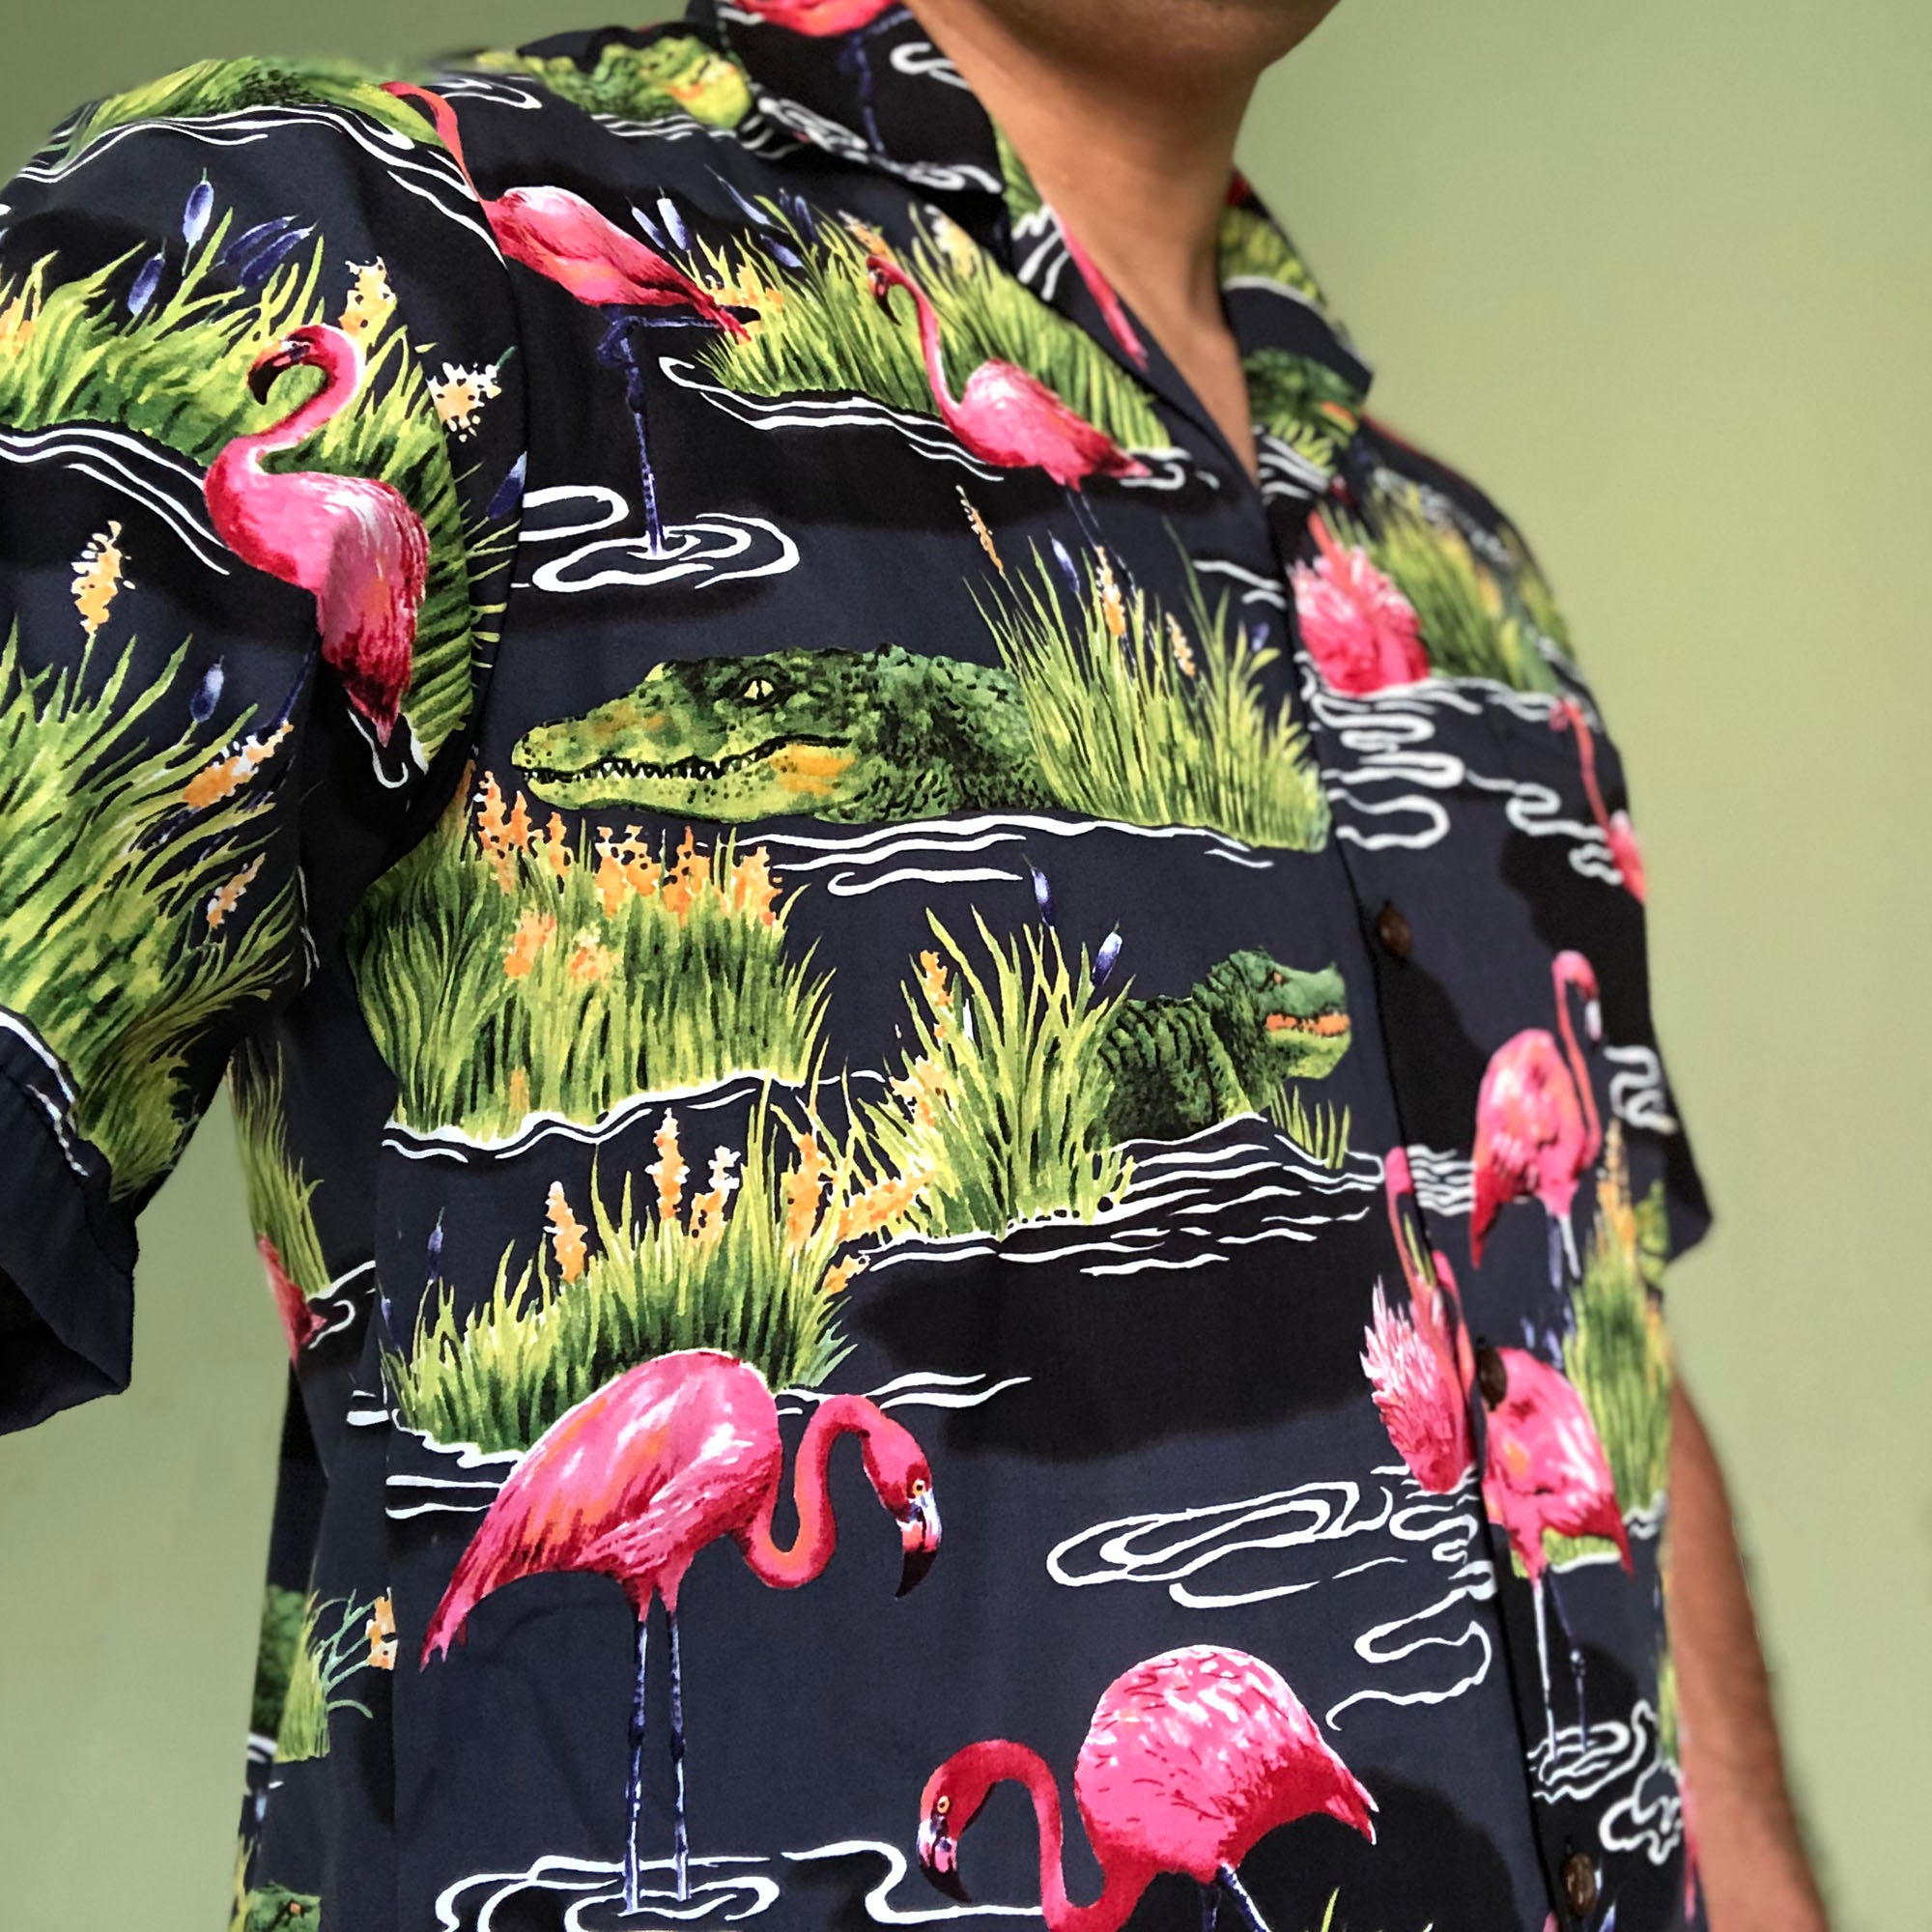 239046a49908d Ugly Aloha Shirts - Get Your Awesome Ugly Hawaiian Shirt